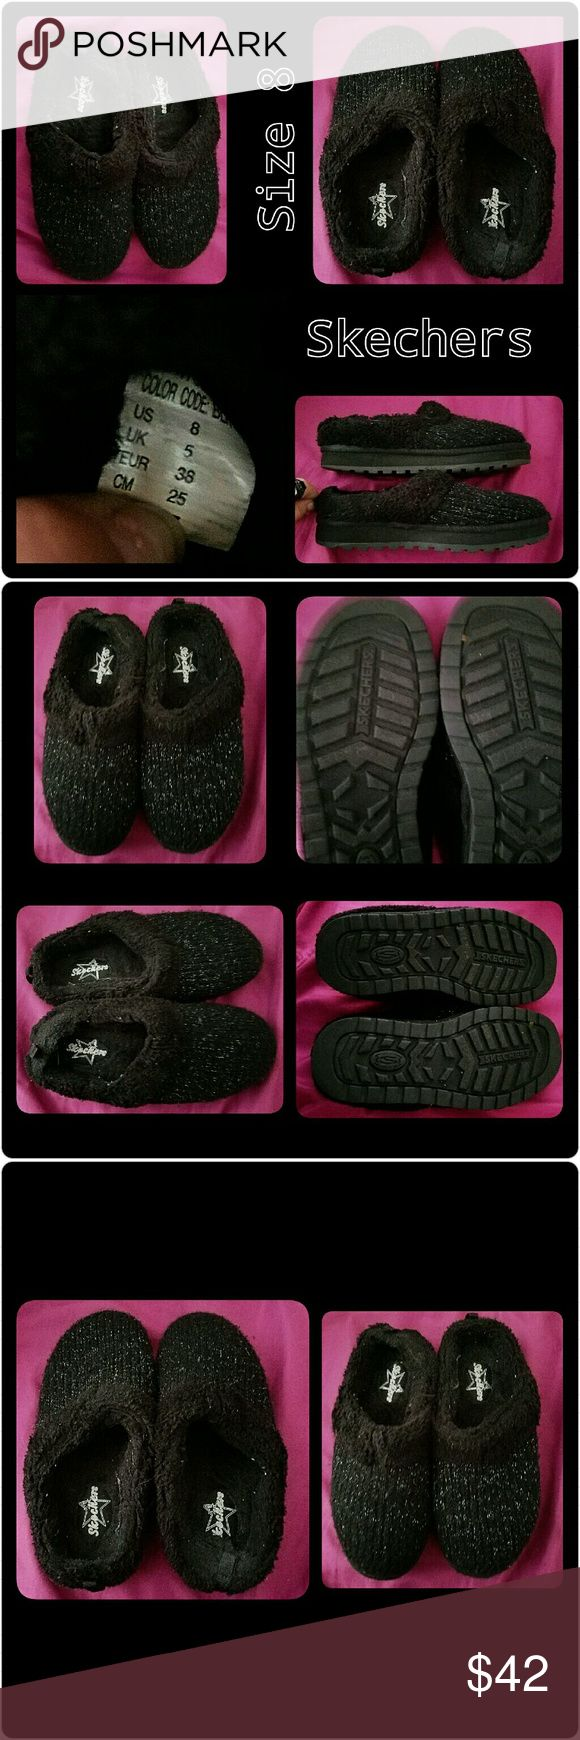 ♥⭐Super Comfy Black Glittery Skecher Slippers♥⭐ ♥⭐♥Oh my goodness these Skechers slippers are so nice and comfy!!♥⭐♥I only tried them on but they've never been worn.🆕.Literally like brand-new🆕♥They don't come with the Box♥ They were a gift.🎀They are size 8. What I love about them is they have REALLY cute silver glitter on them!! ⭐⭐and they're nice and fuzzy and comfortable!!⭐♥ ⭐SO COZY FOR THOSE COLD NIGHTS!☺😊♥⭐♥⭐♥⭐♥⭐♥ Skechers Shoes Slippers